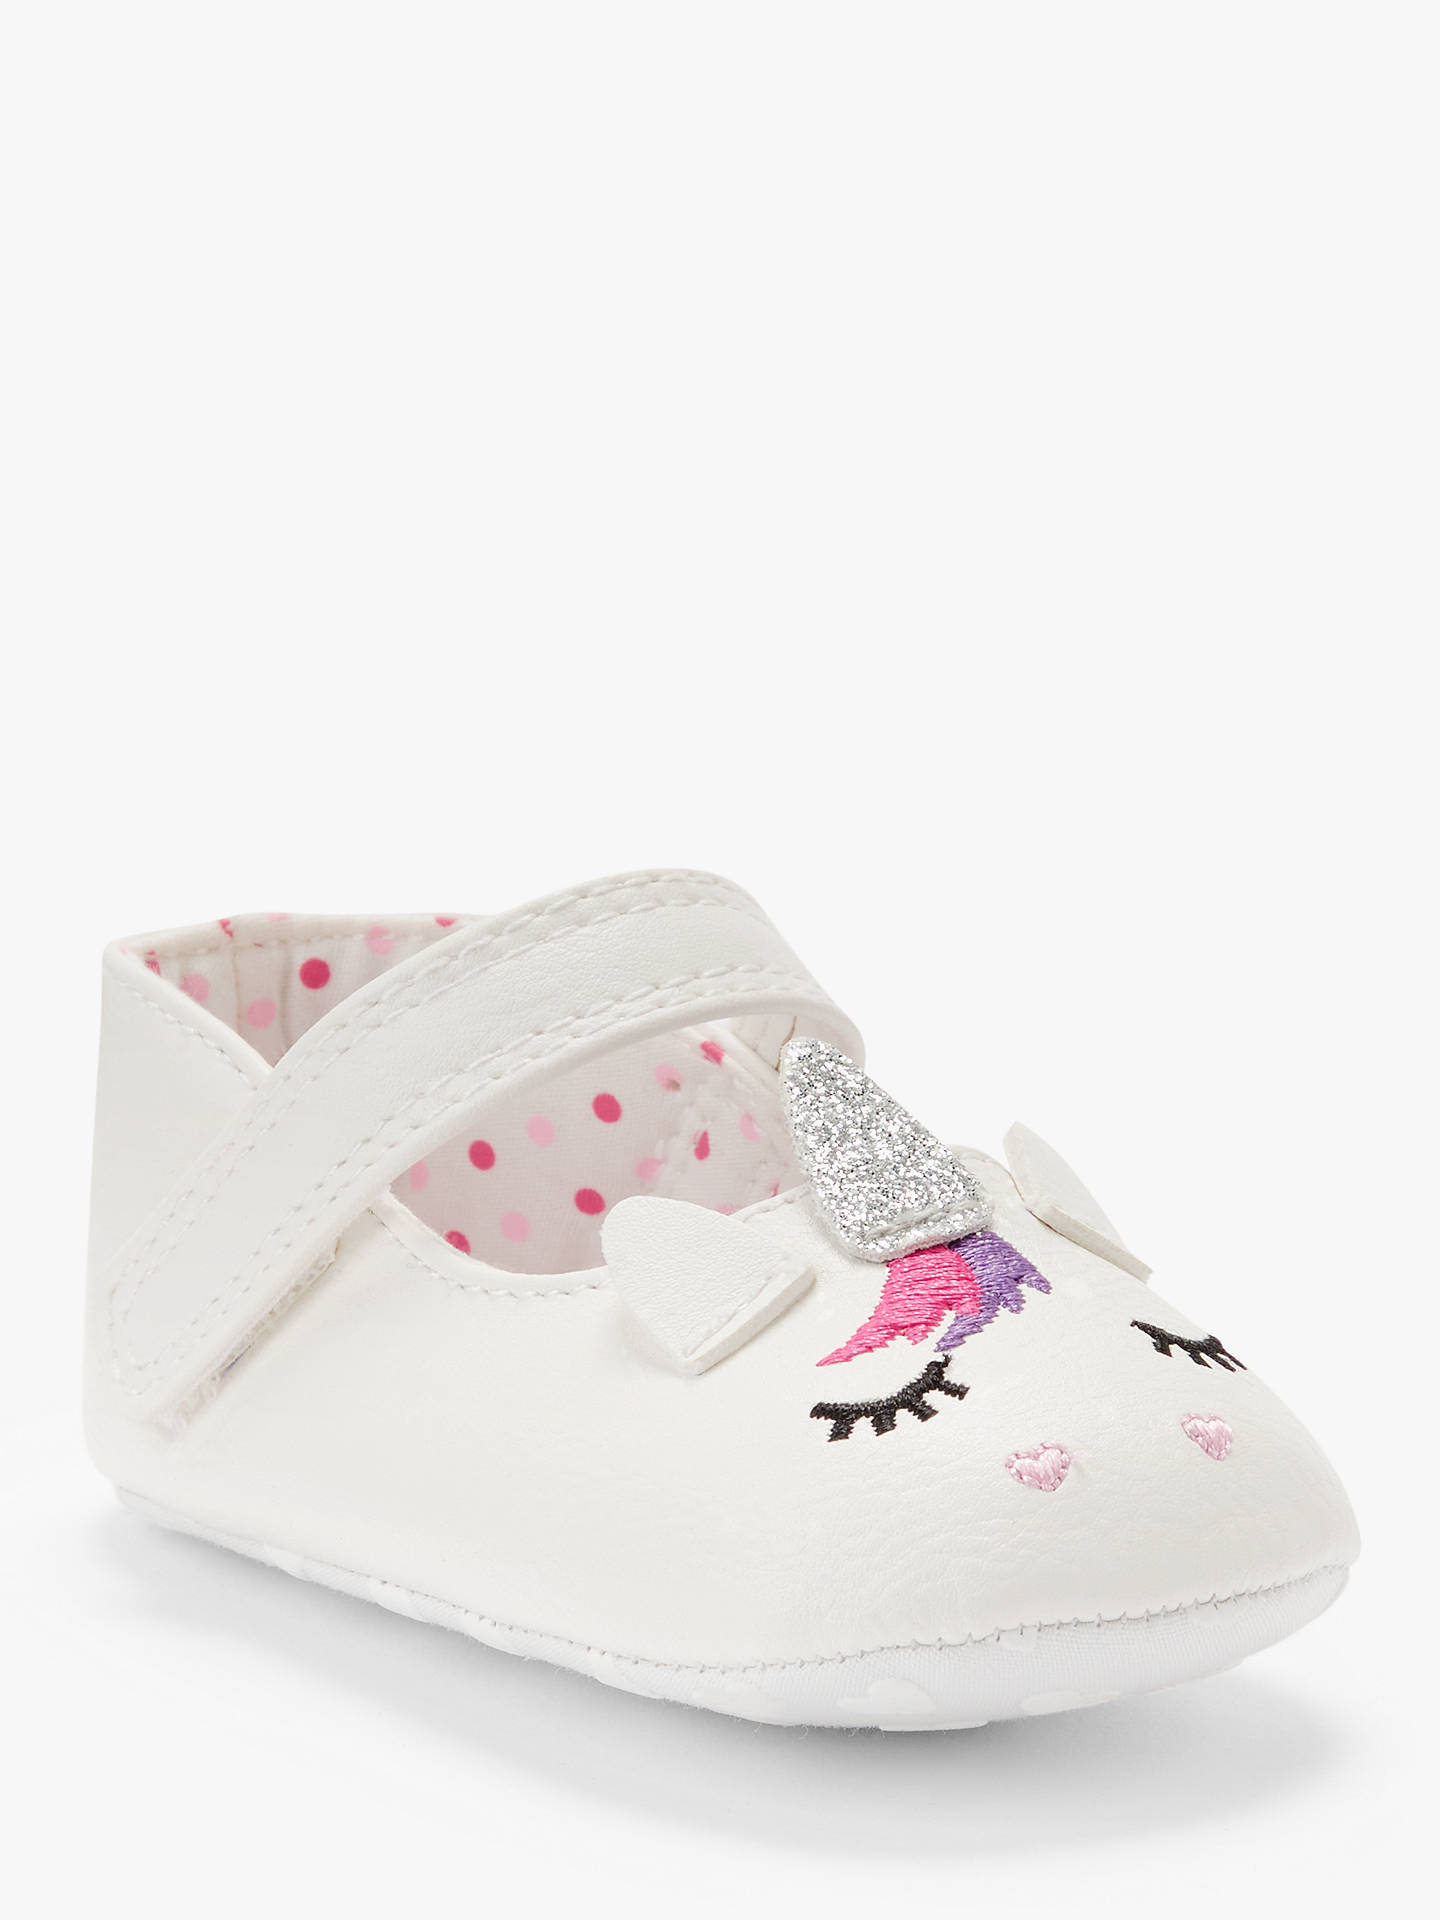 1058ee51280f Buy John Lewis & Partners Baby Unicorn Shoes, White, 6-12 months Online ...